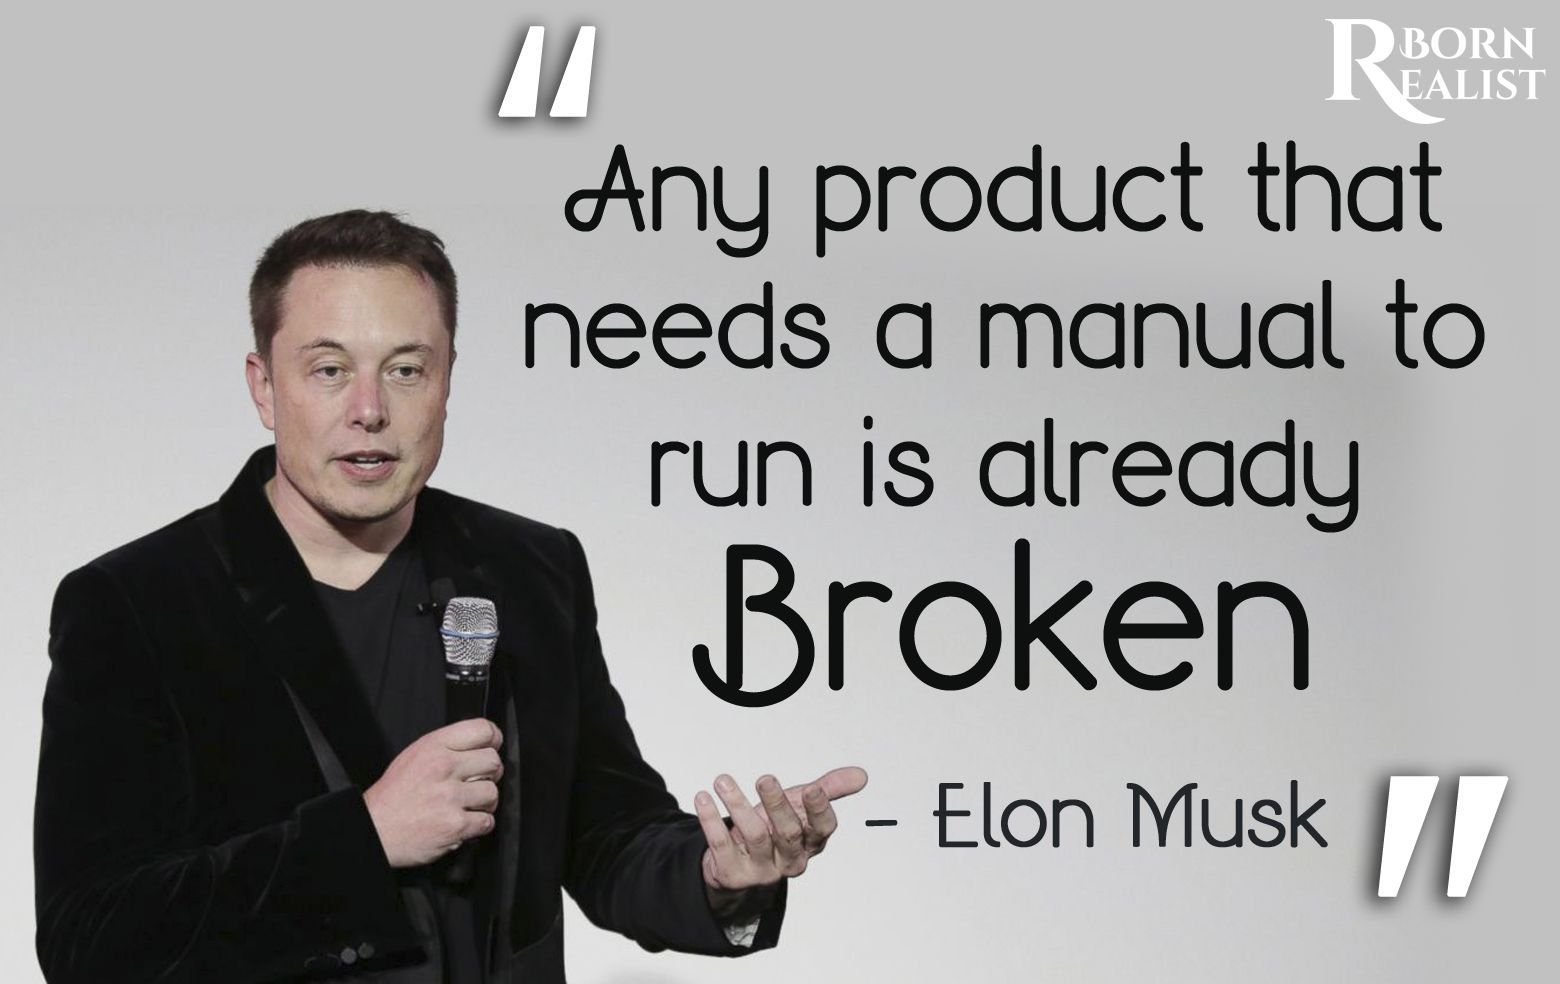 Any product that needs a manual to run is already broken. -Elon Musk [1560X984]